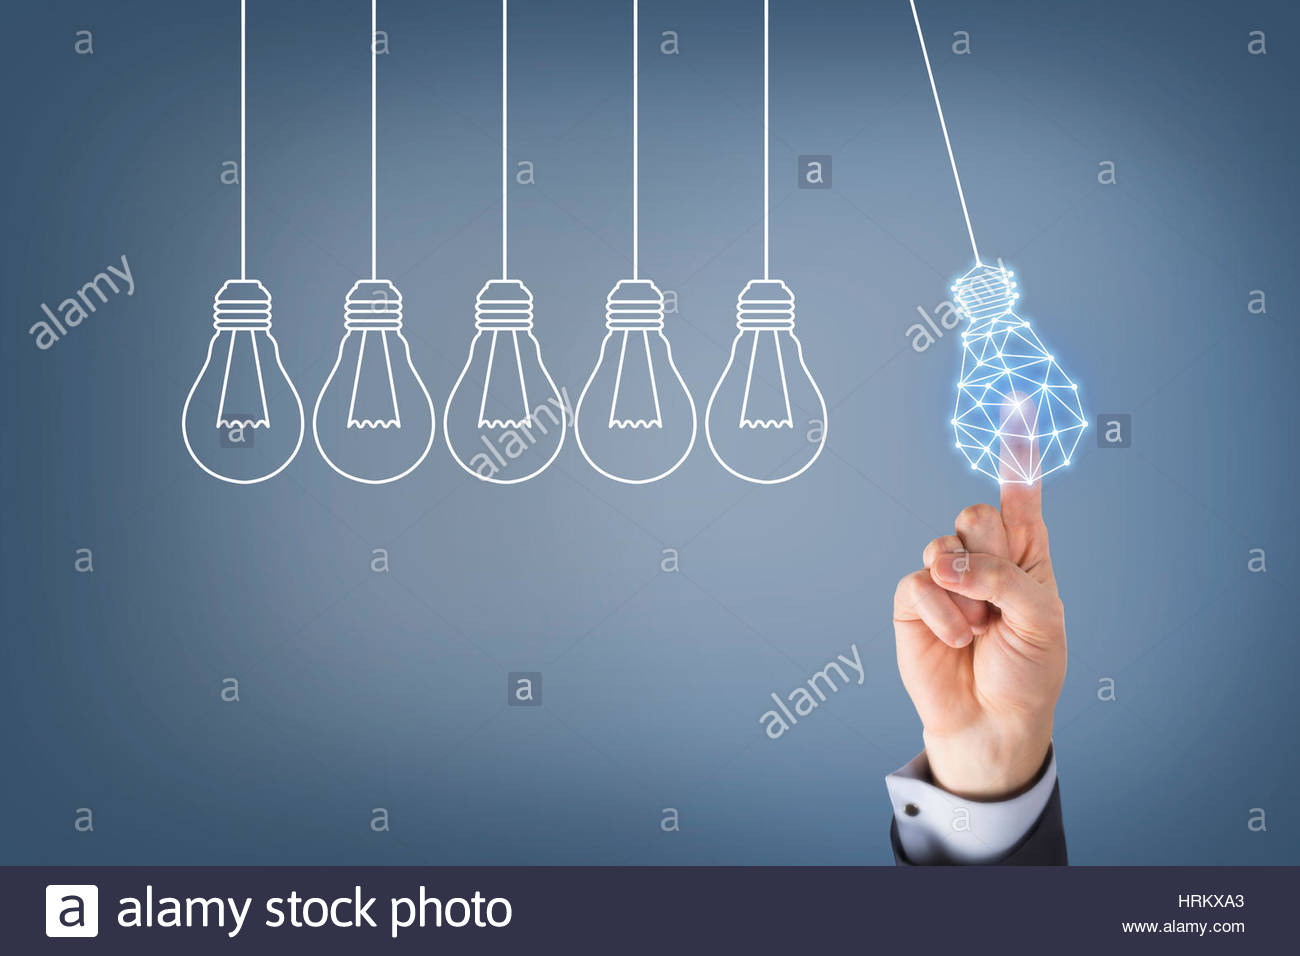 Human Hand Touching Innovation Concepts on Visual Screen - Stock Image